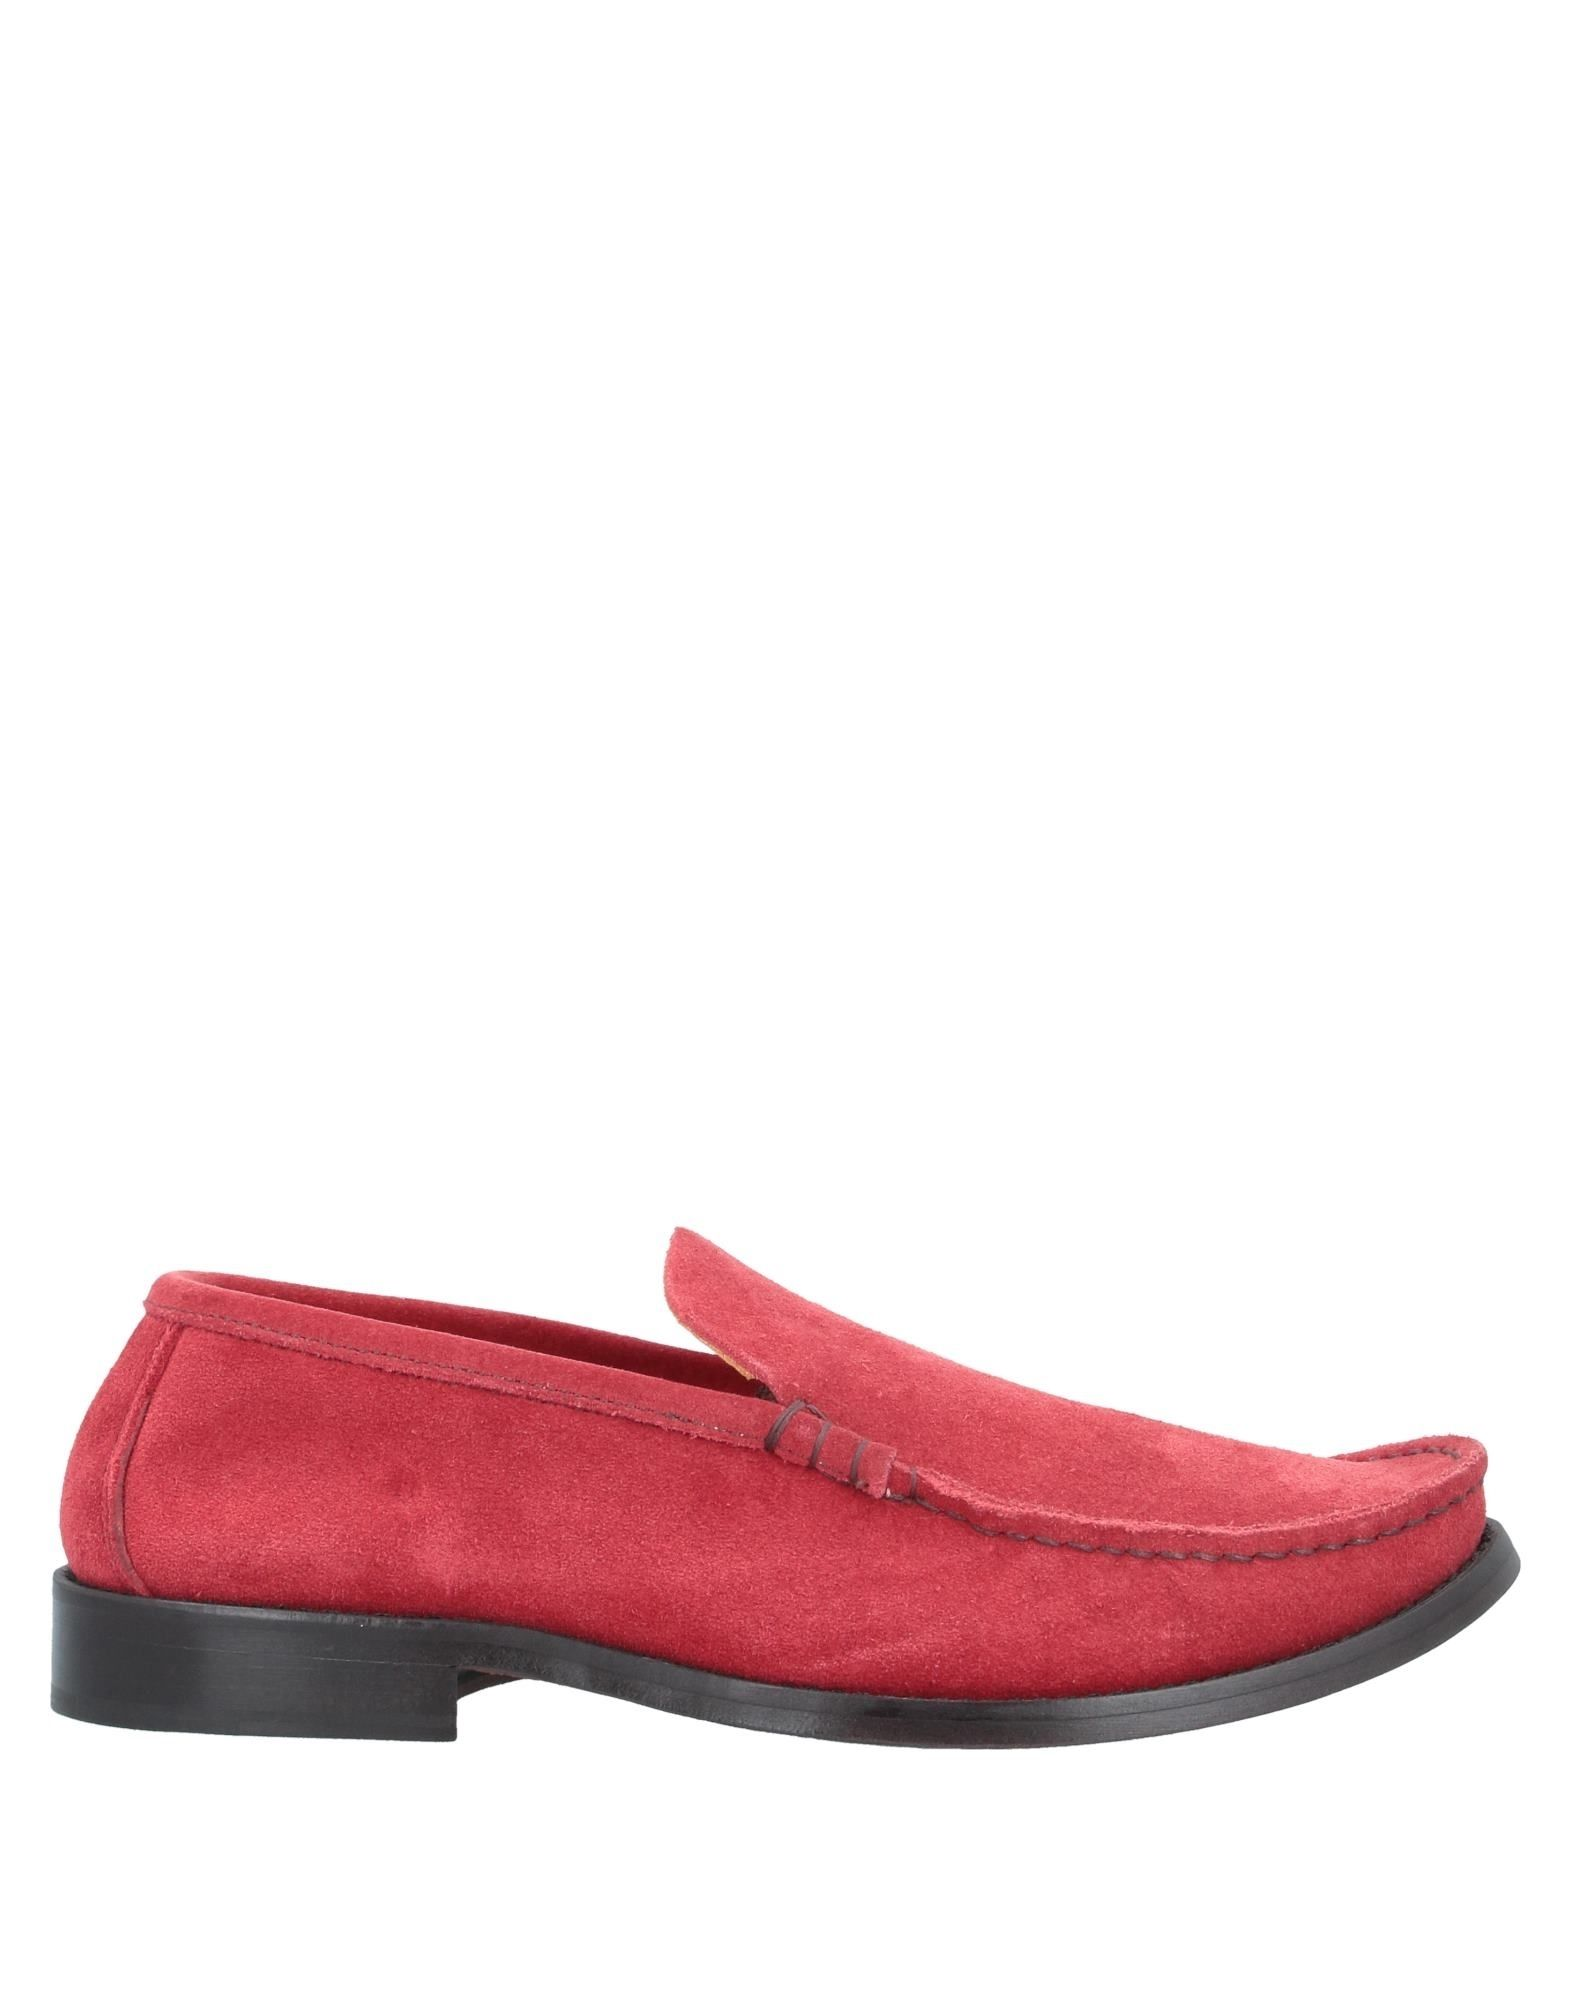 FLORSHEIM IMPERIAL Loafers - Item 11883880